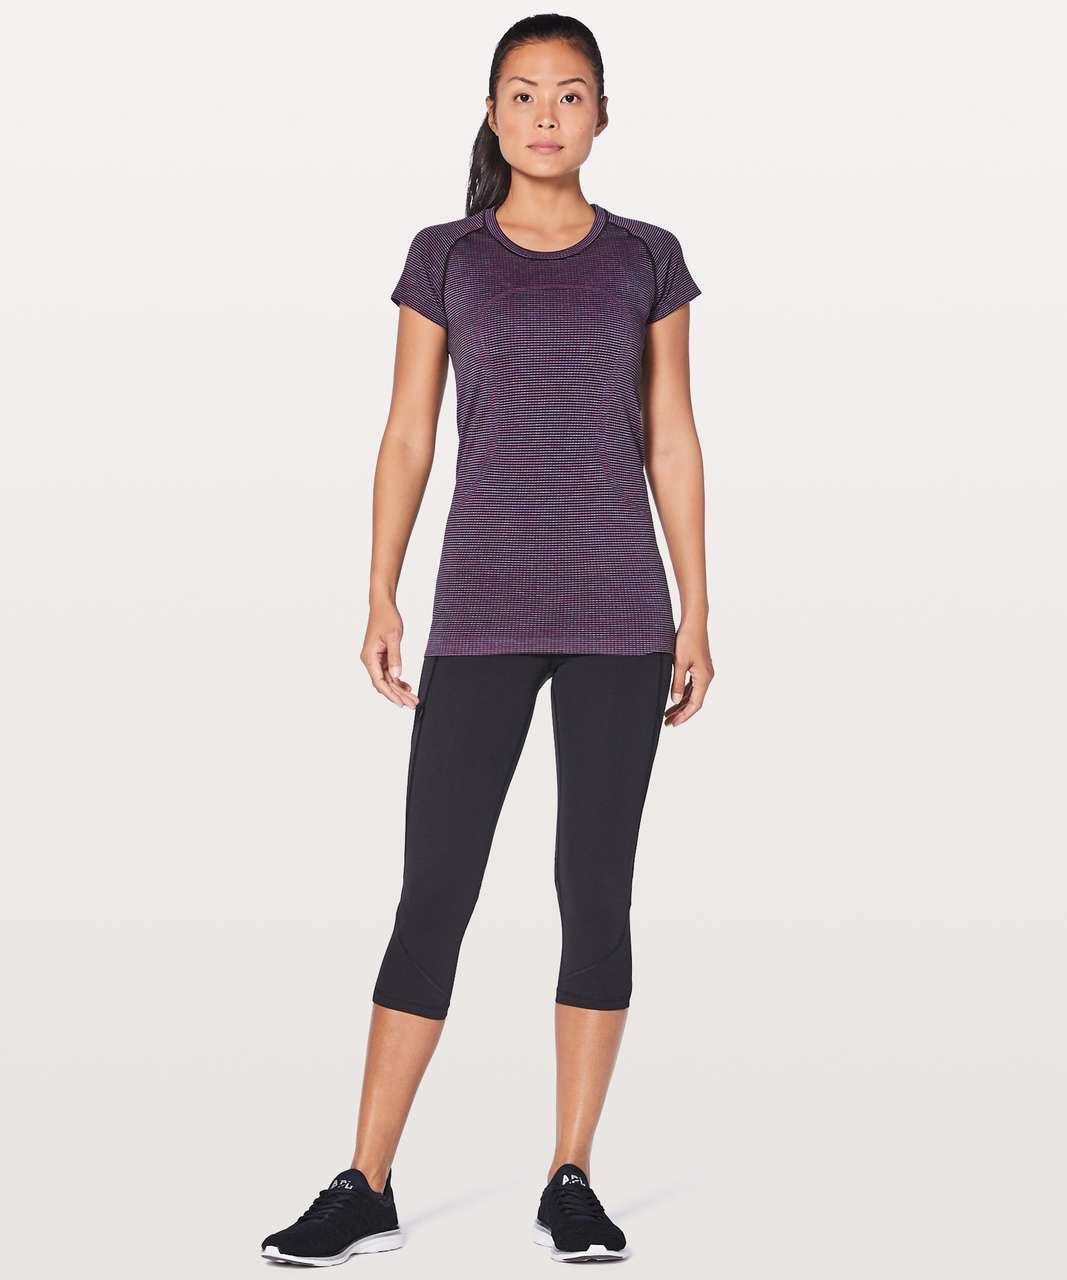 Lululemon Swiftly Tech Short Sleeve Crew - Pink Paradise / Black / Lavender / Blue